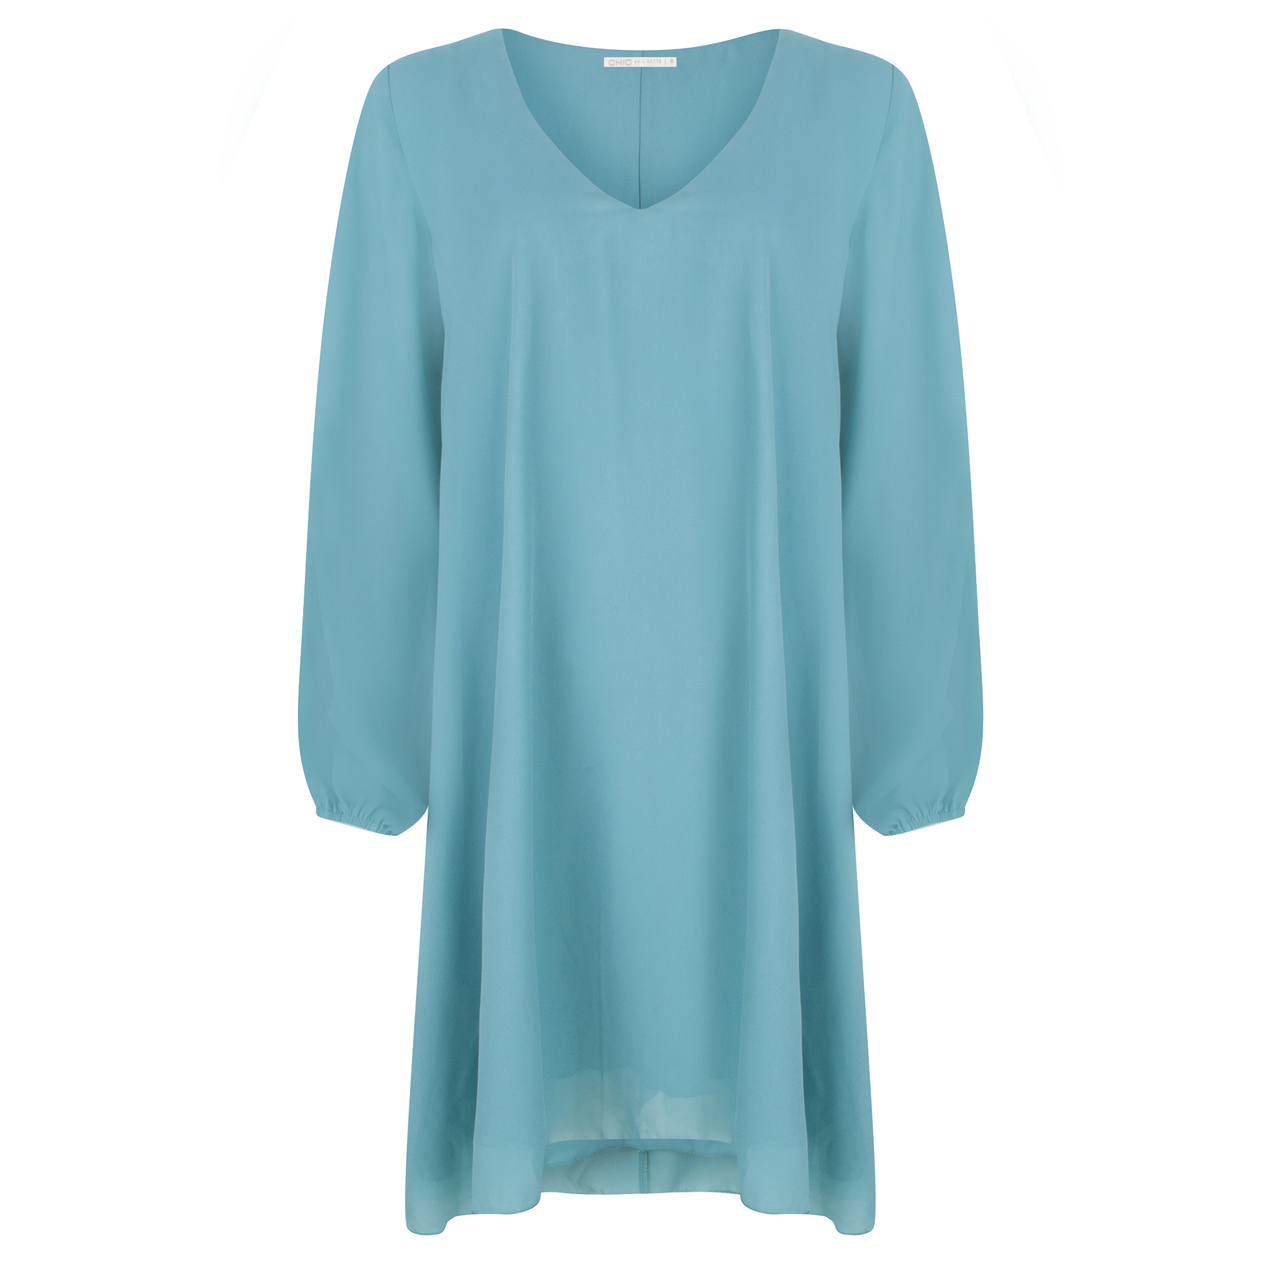 Chic by Lirette -Cover up Avalon Bluebell